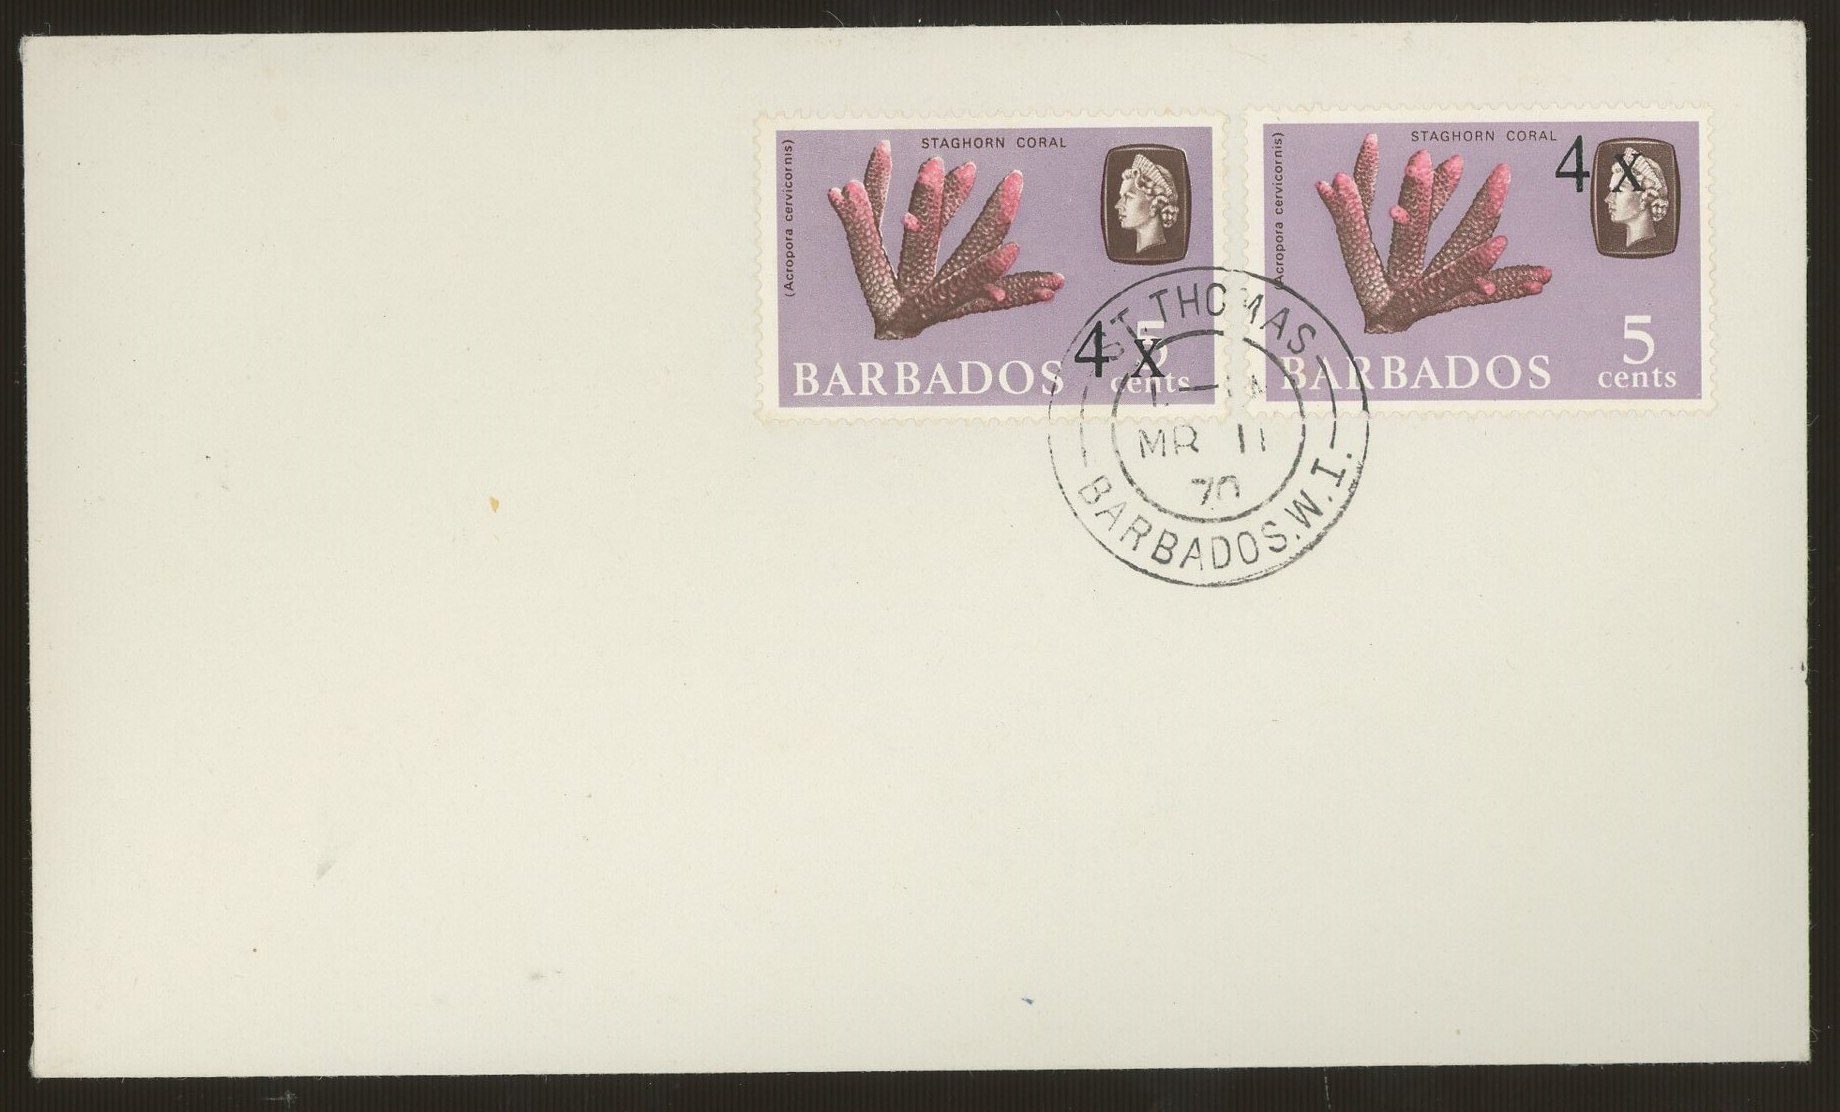 1970 4c on 5c Staghorn Coral x 2 on cover, one with surcharge by Queen's Head instead of value.